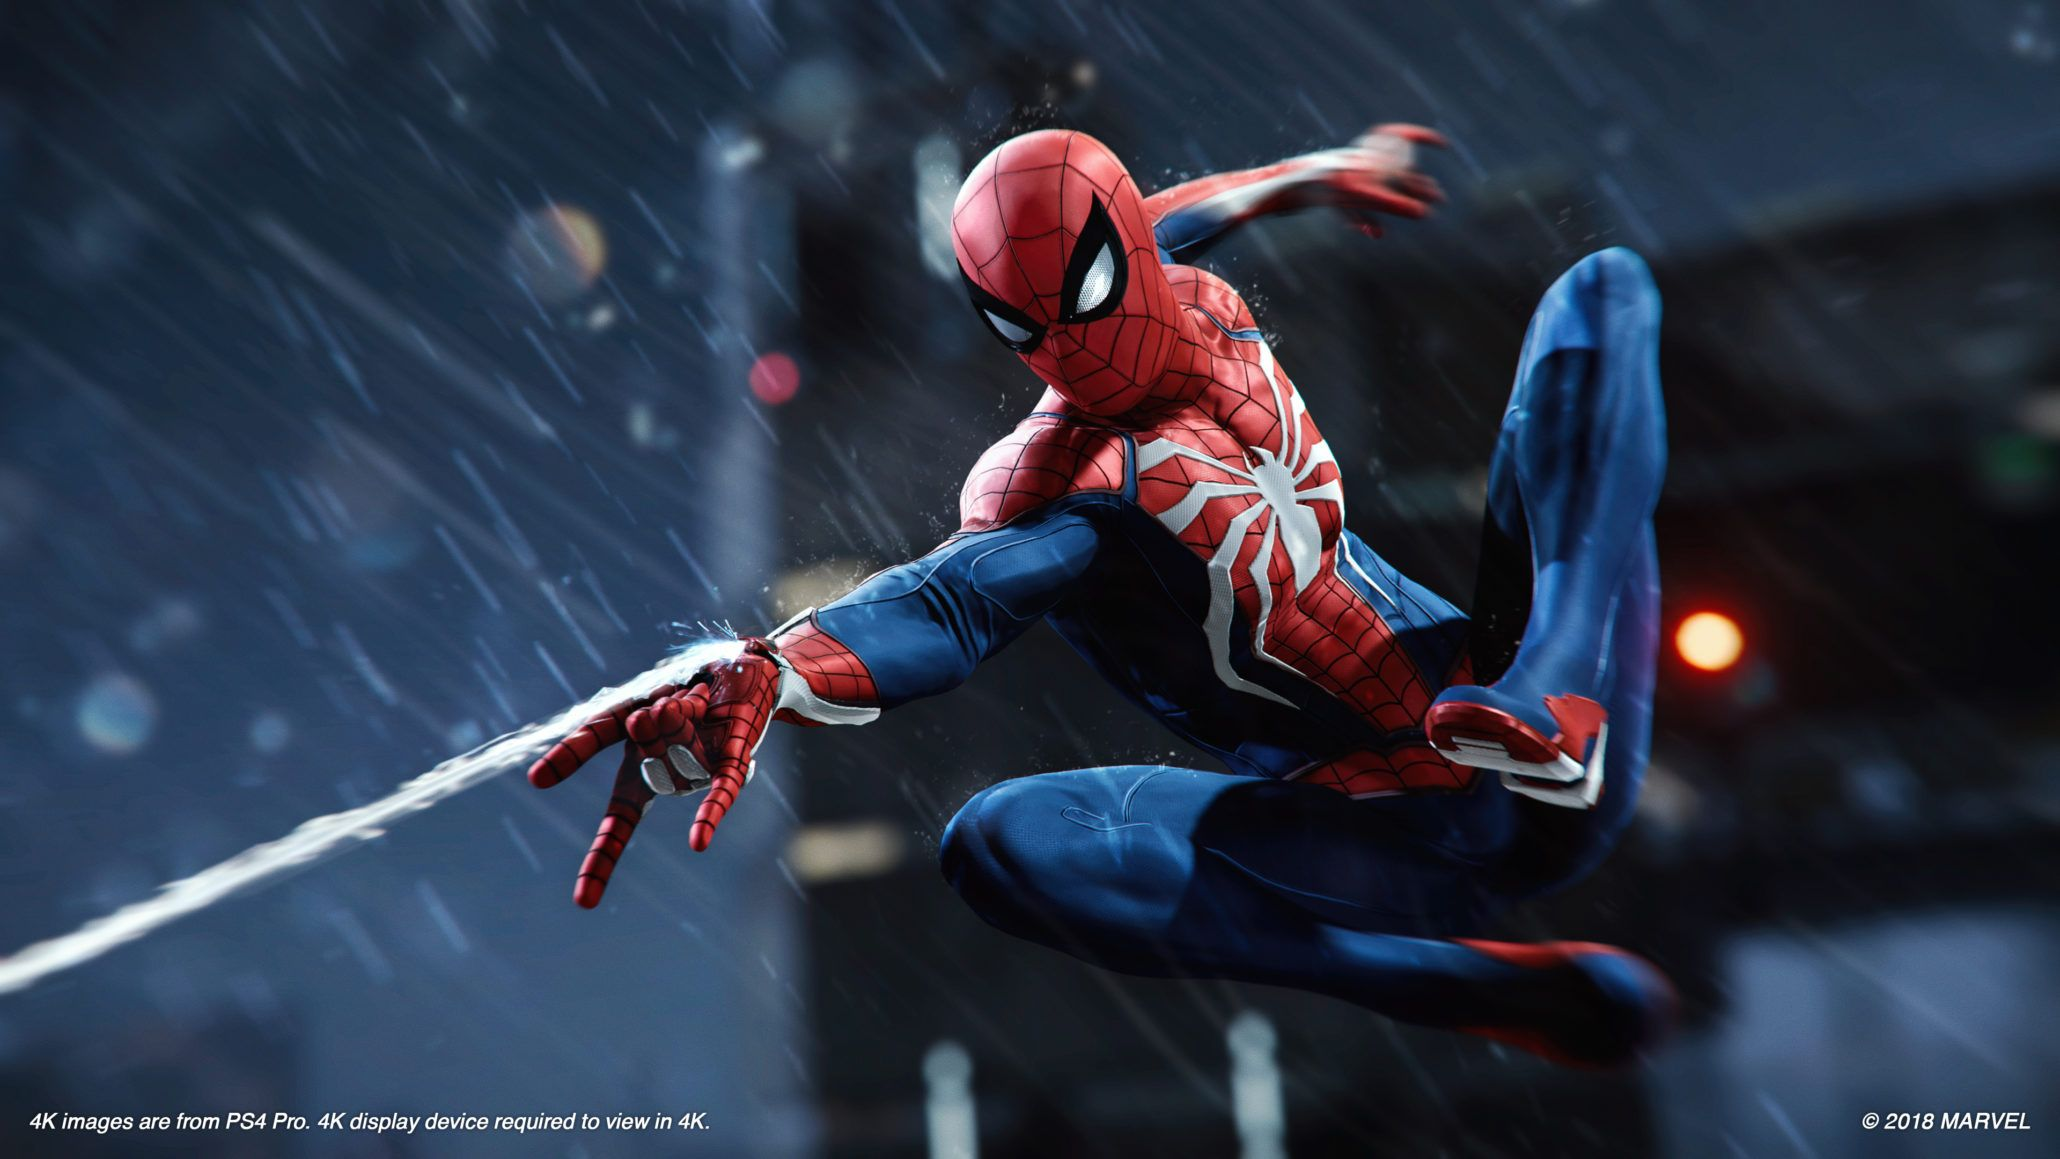 ift.tt/36NBBFE What are your favorite video game memories of Spider-Man The new …